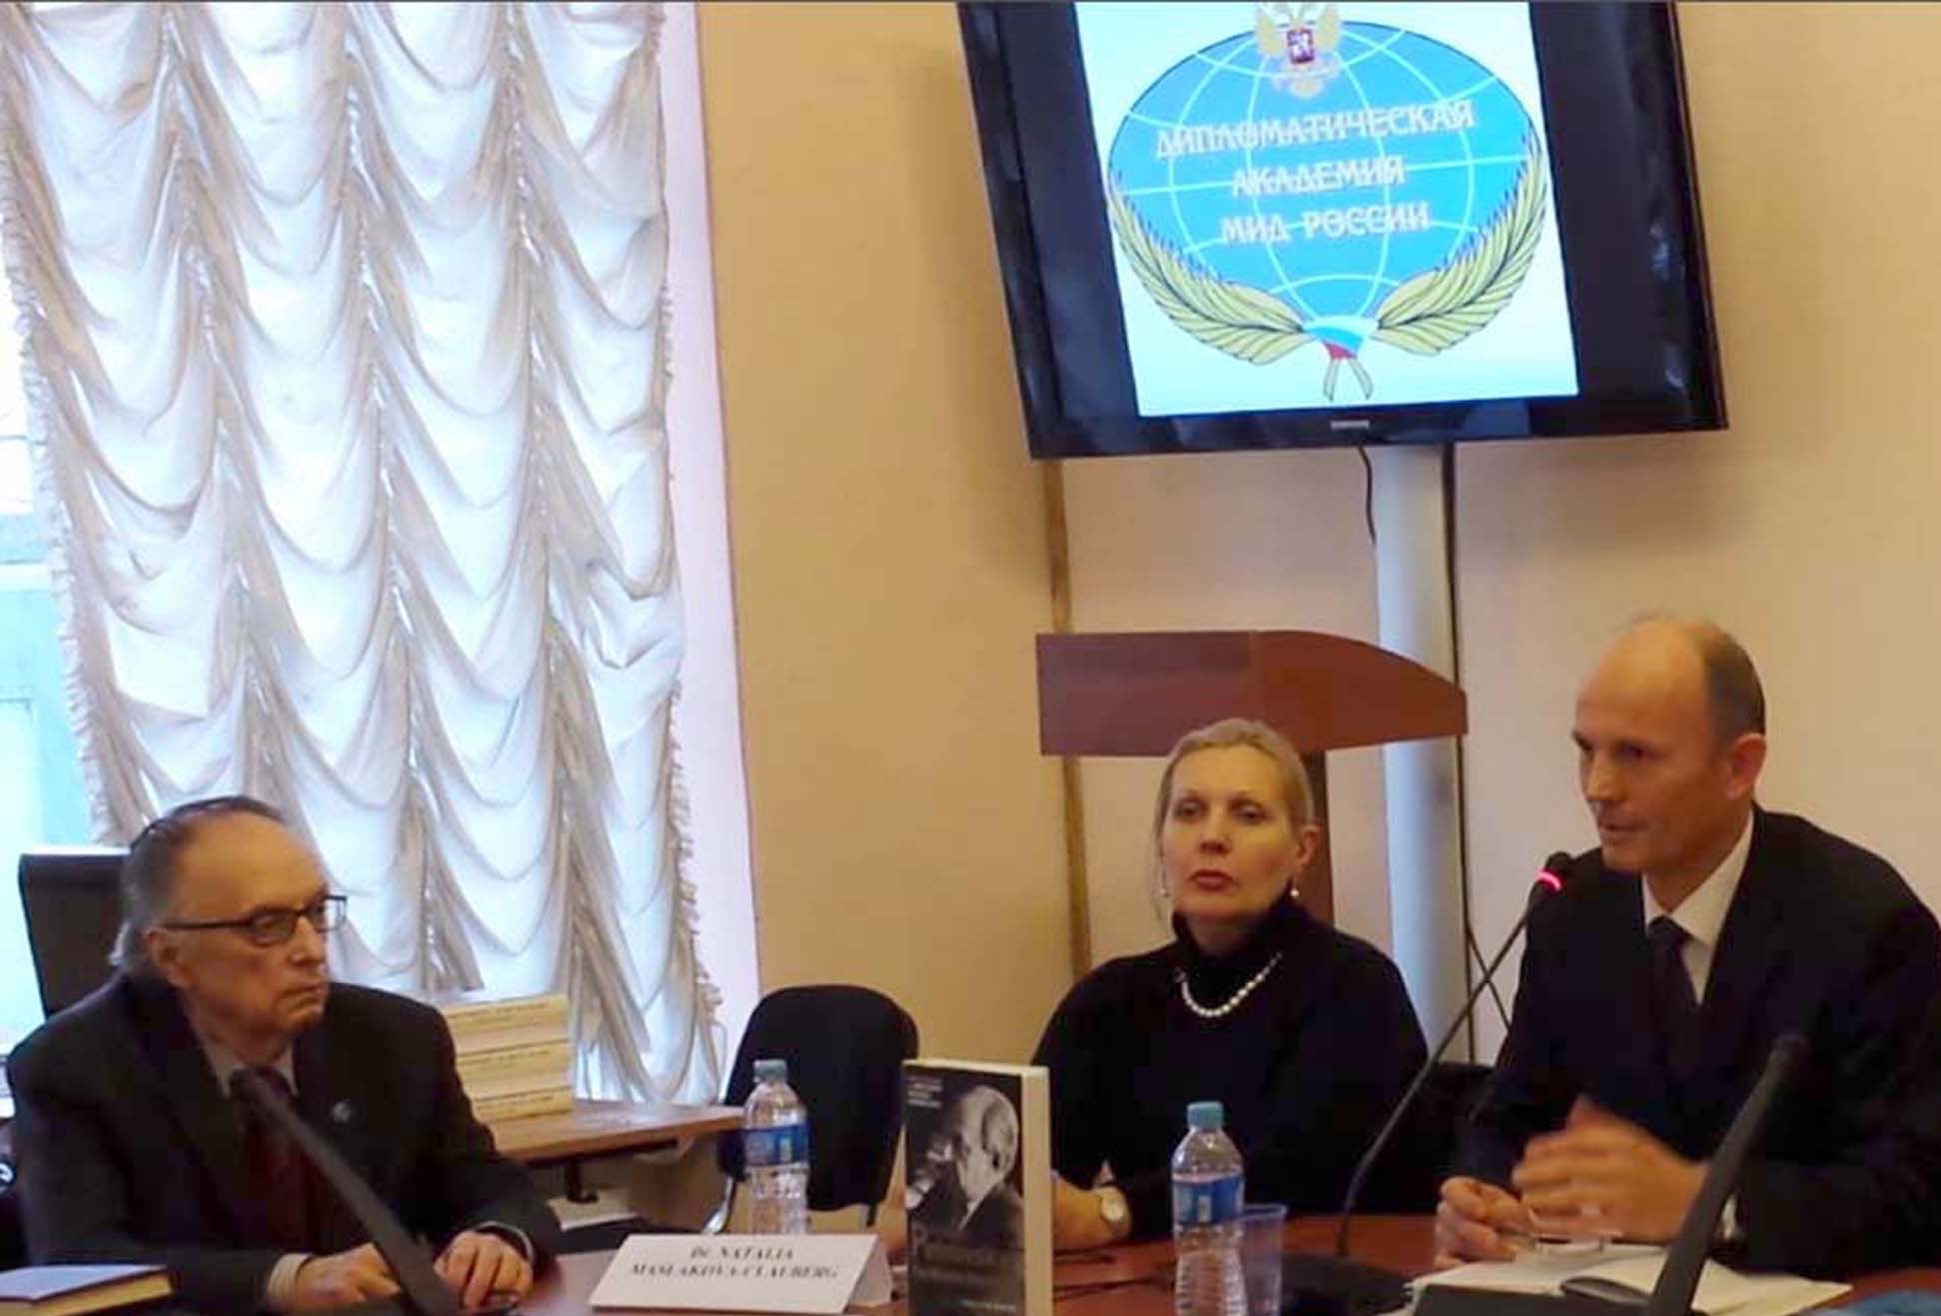 The Book Presentation in Moscow